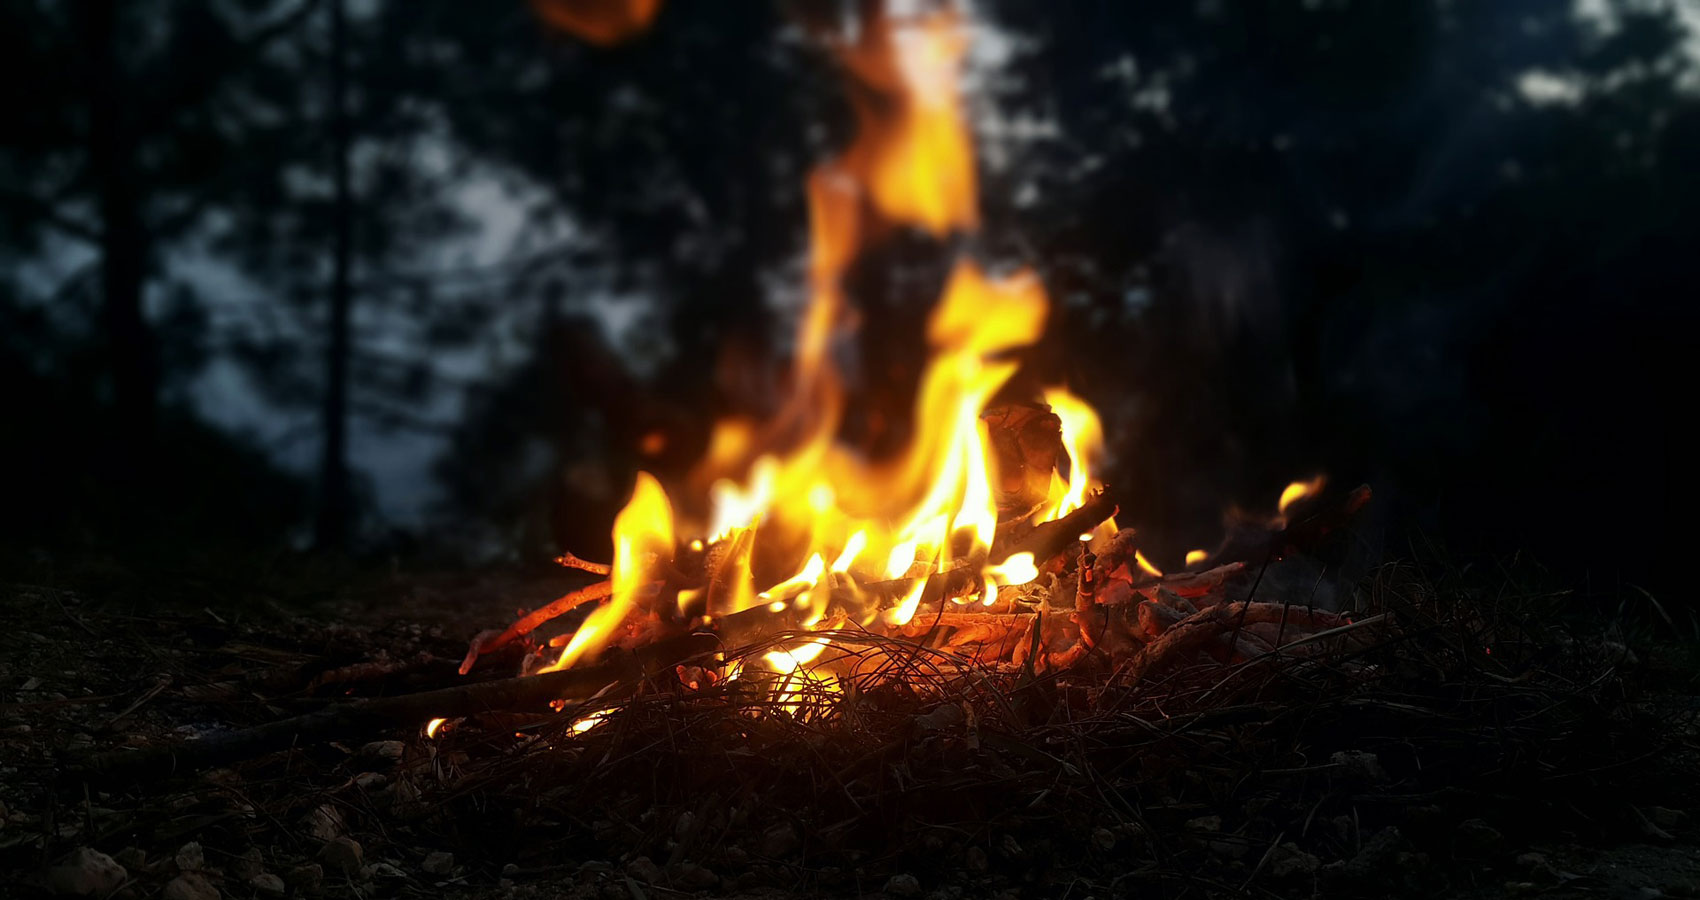 Campfire, written by Sue Vanderberg at Spillwords.com